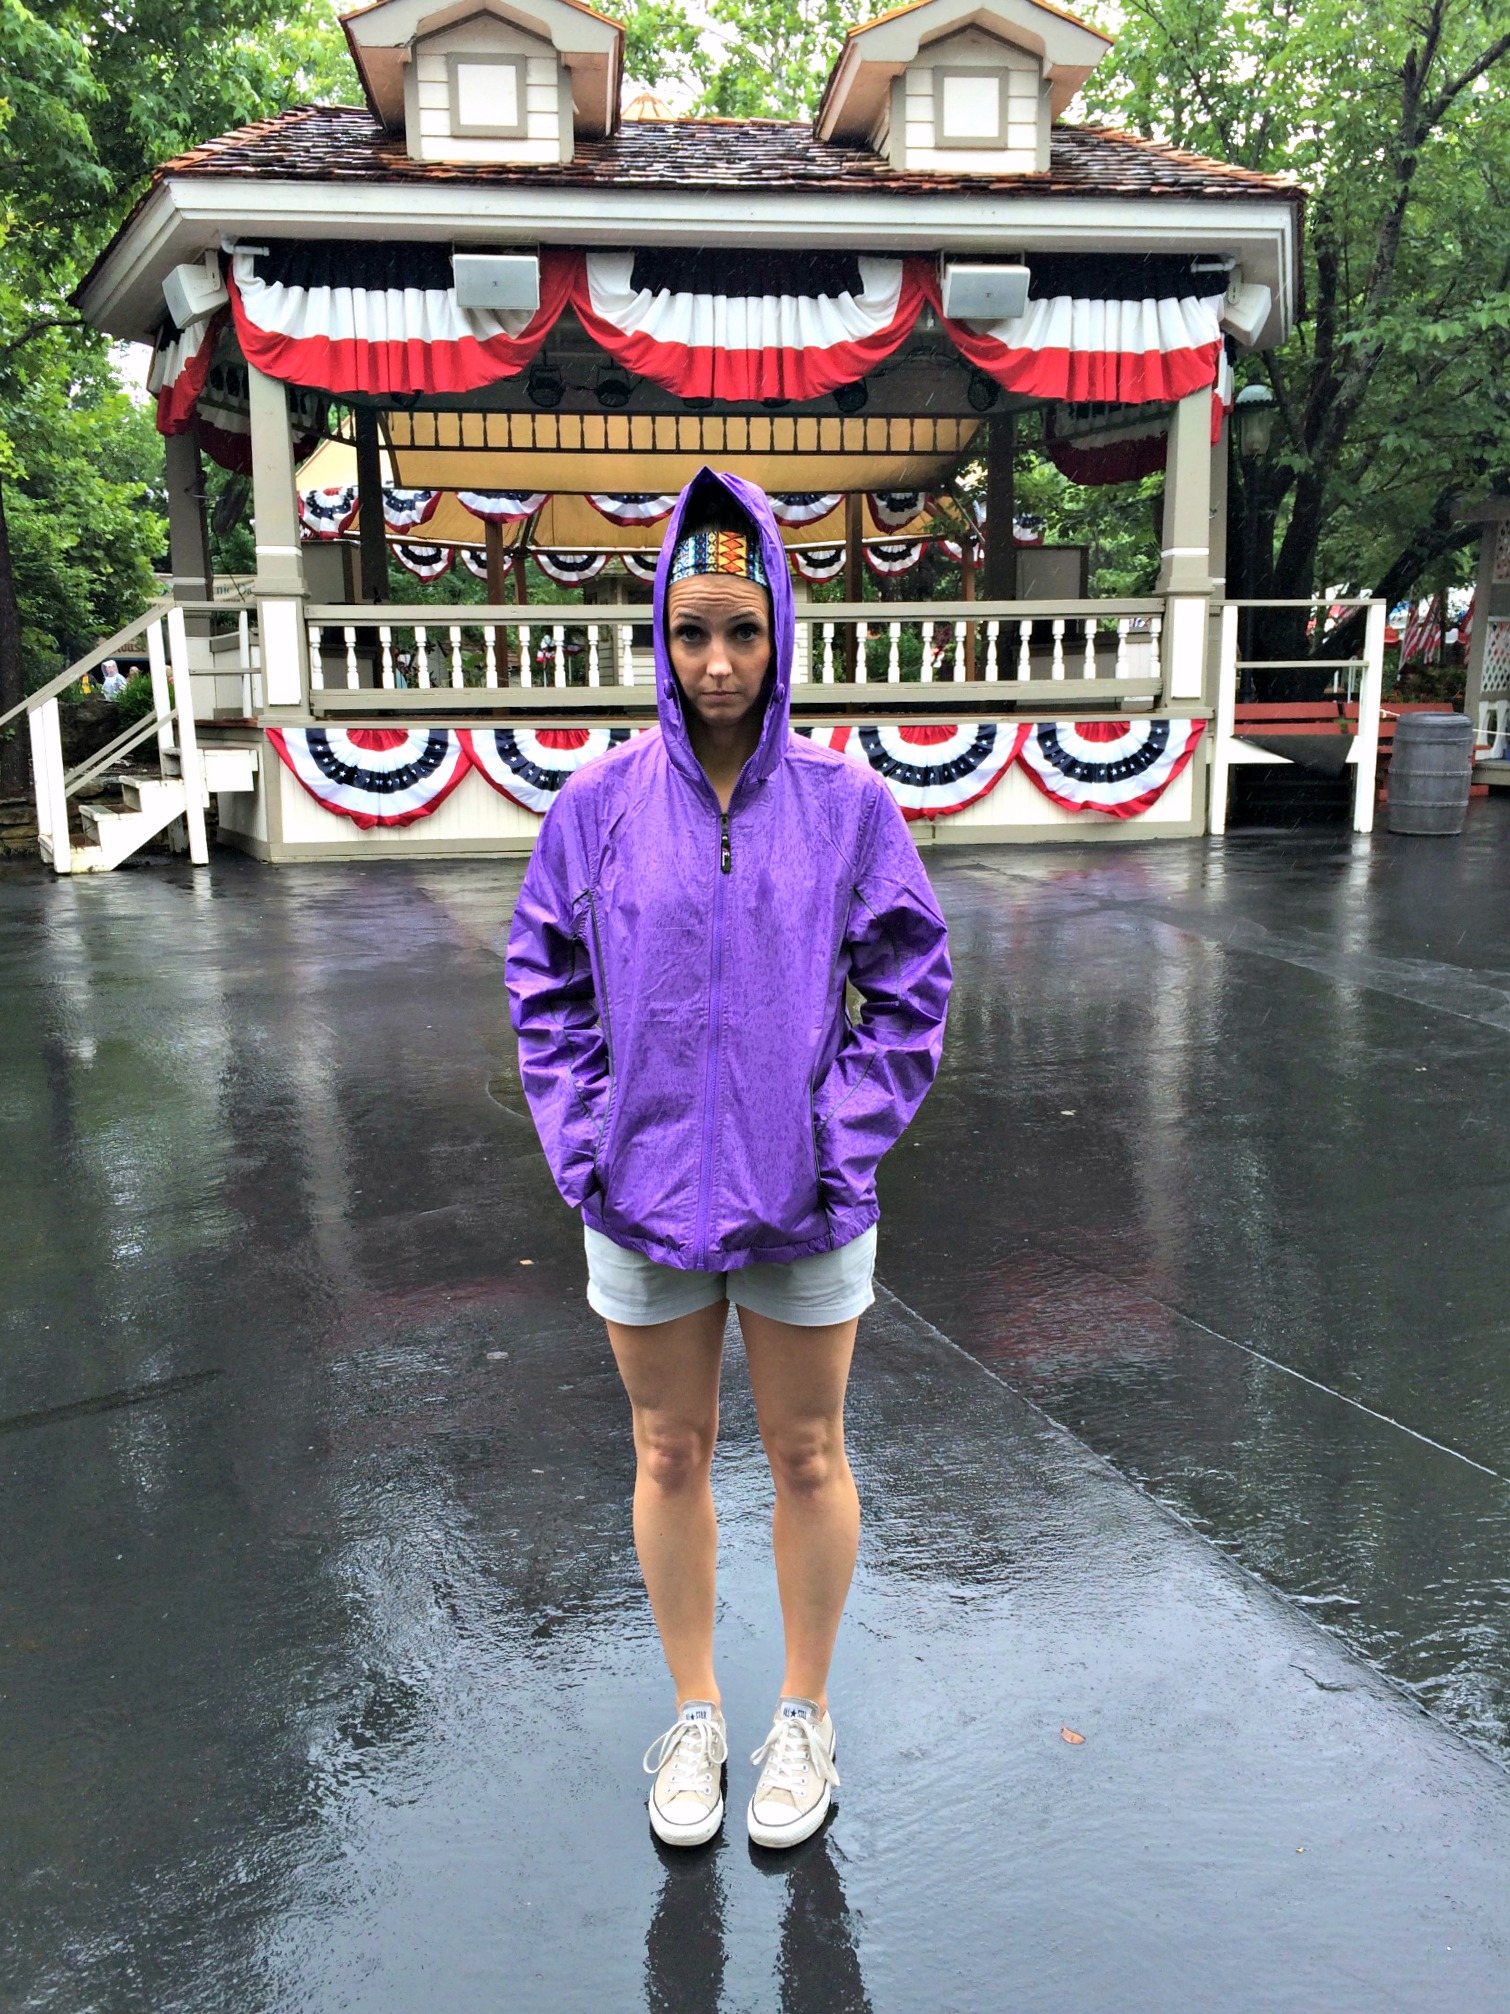 raining at silver dollar city